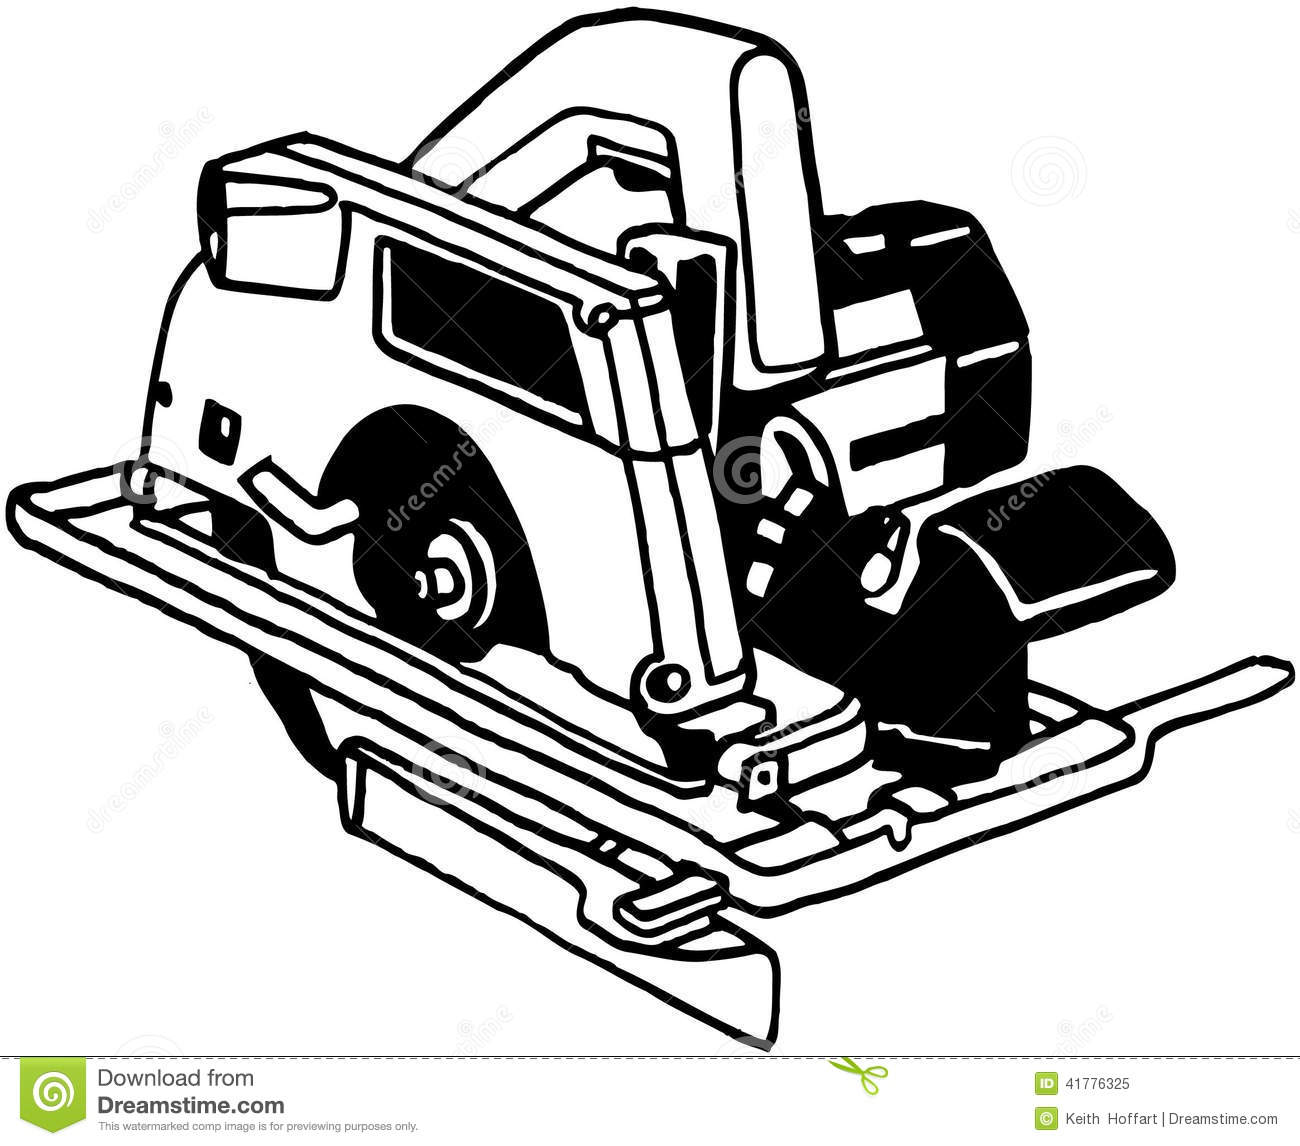 hight resolution of power saw tool cartoon vector clipart